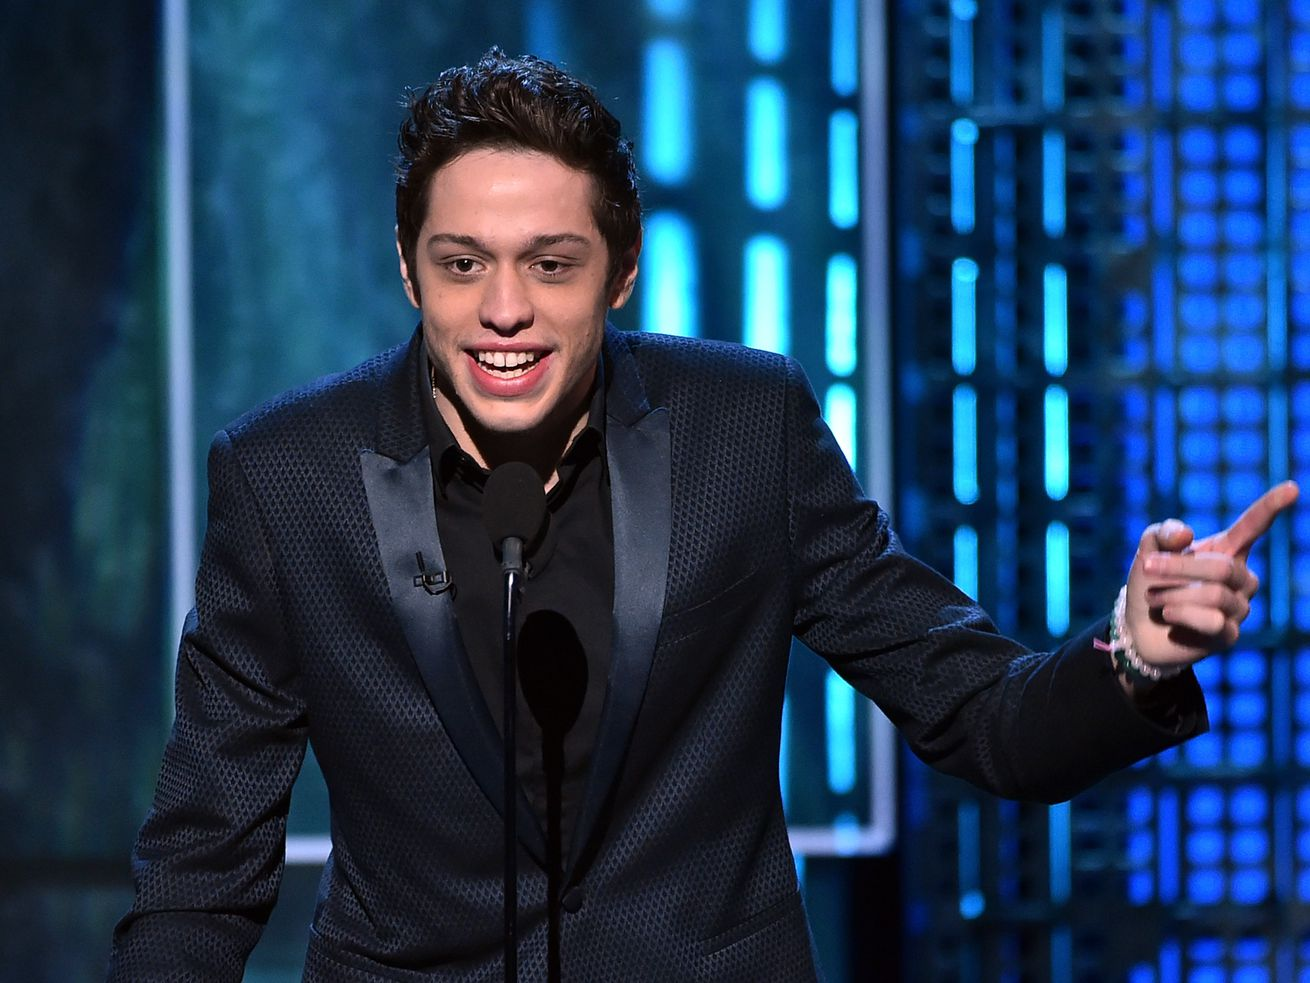 Pete Davidson Turned Up to a Sold-Out